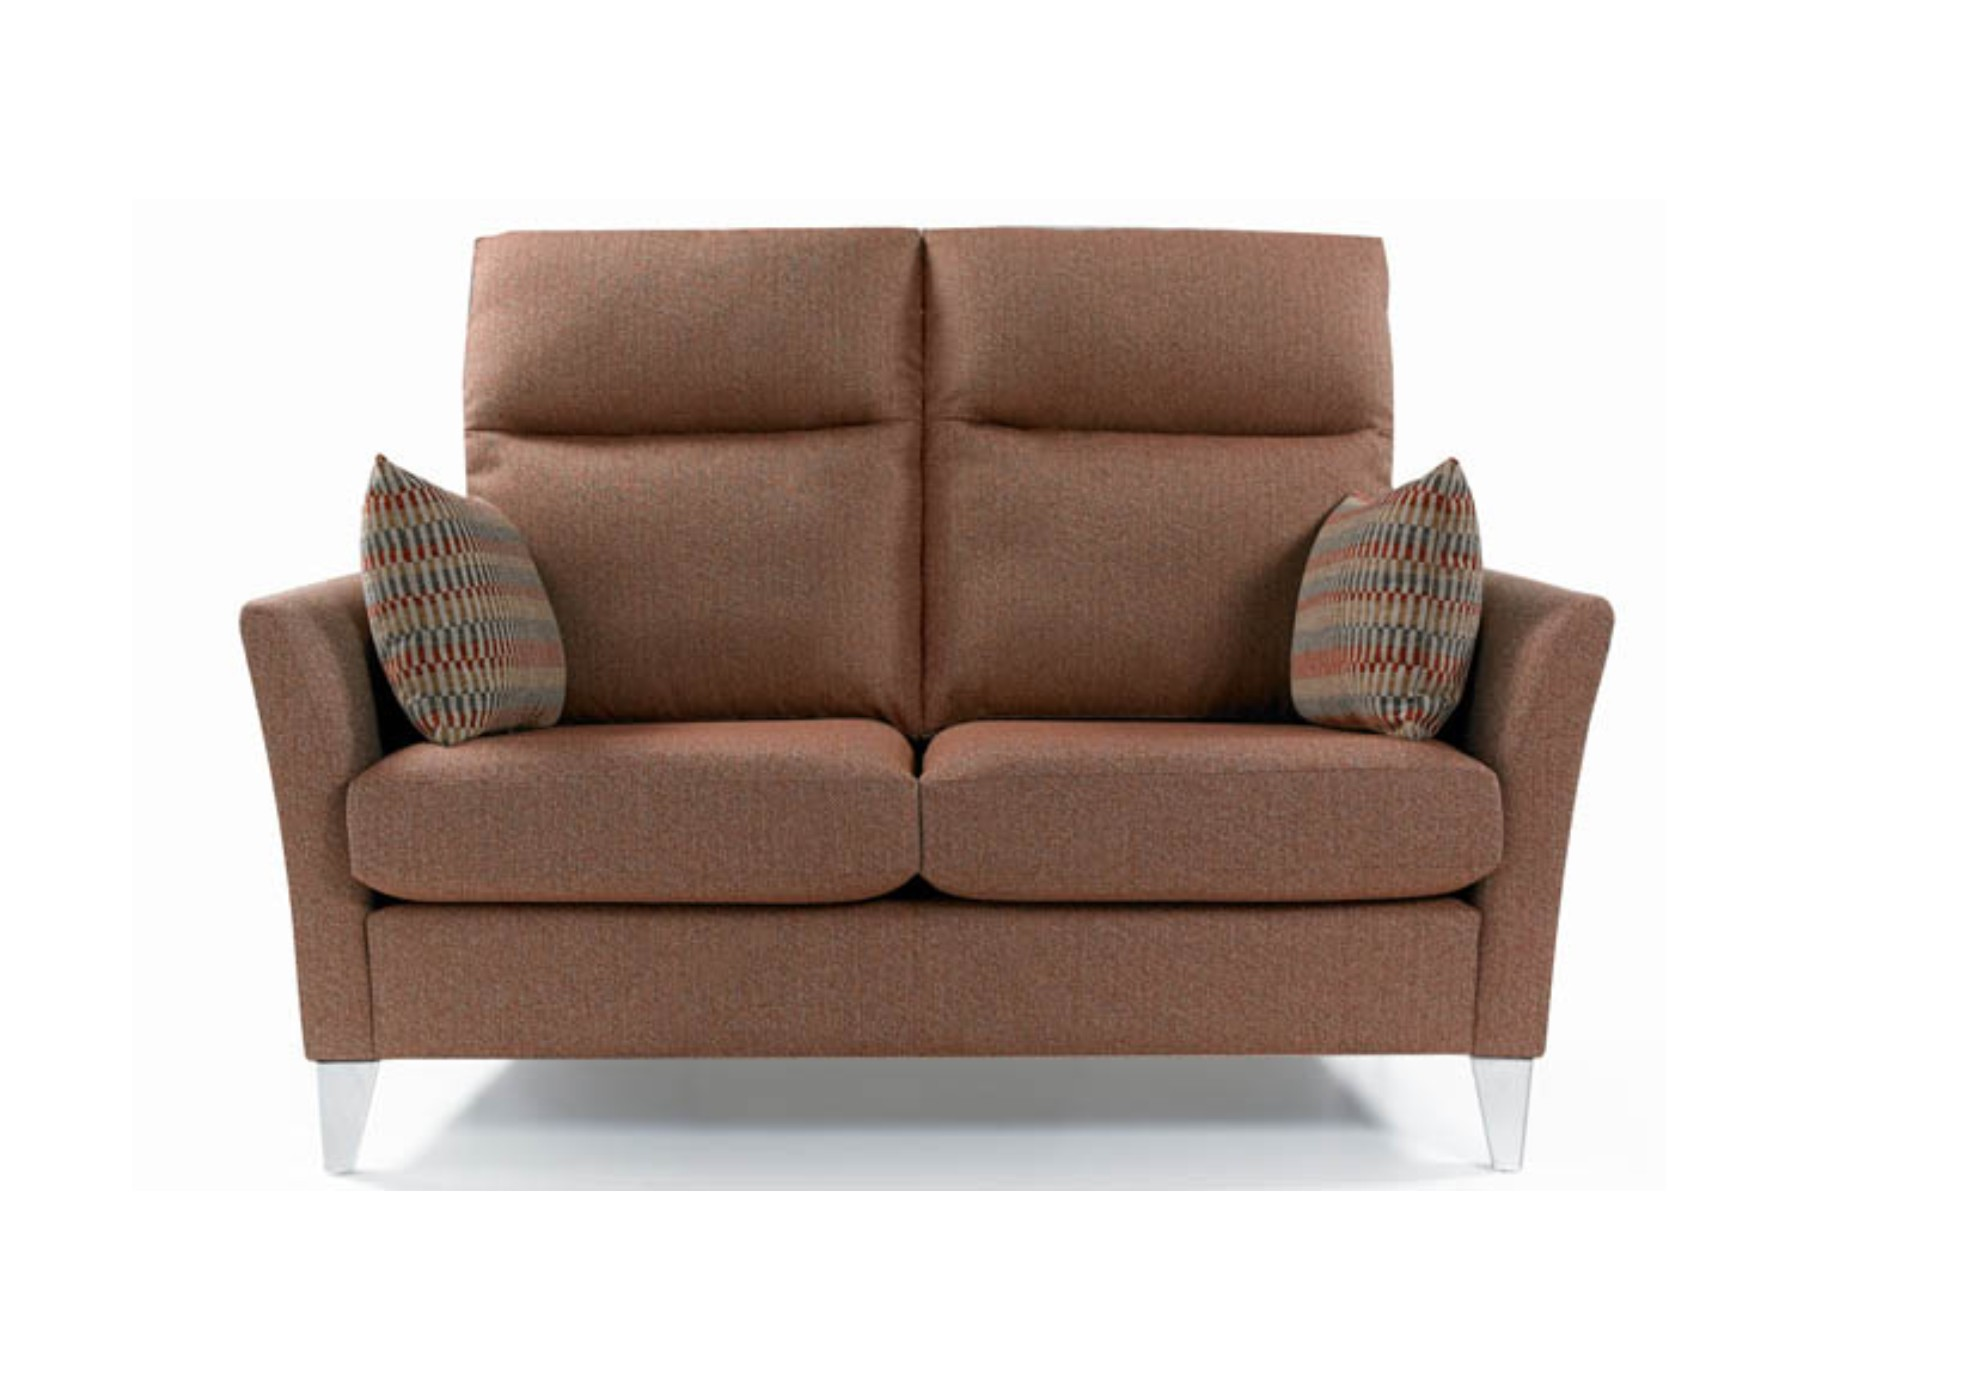 Milo 2 Seater High Back Sofa